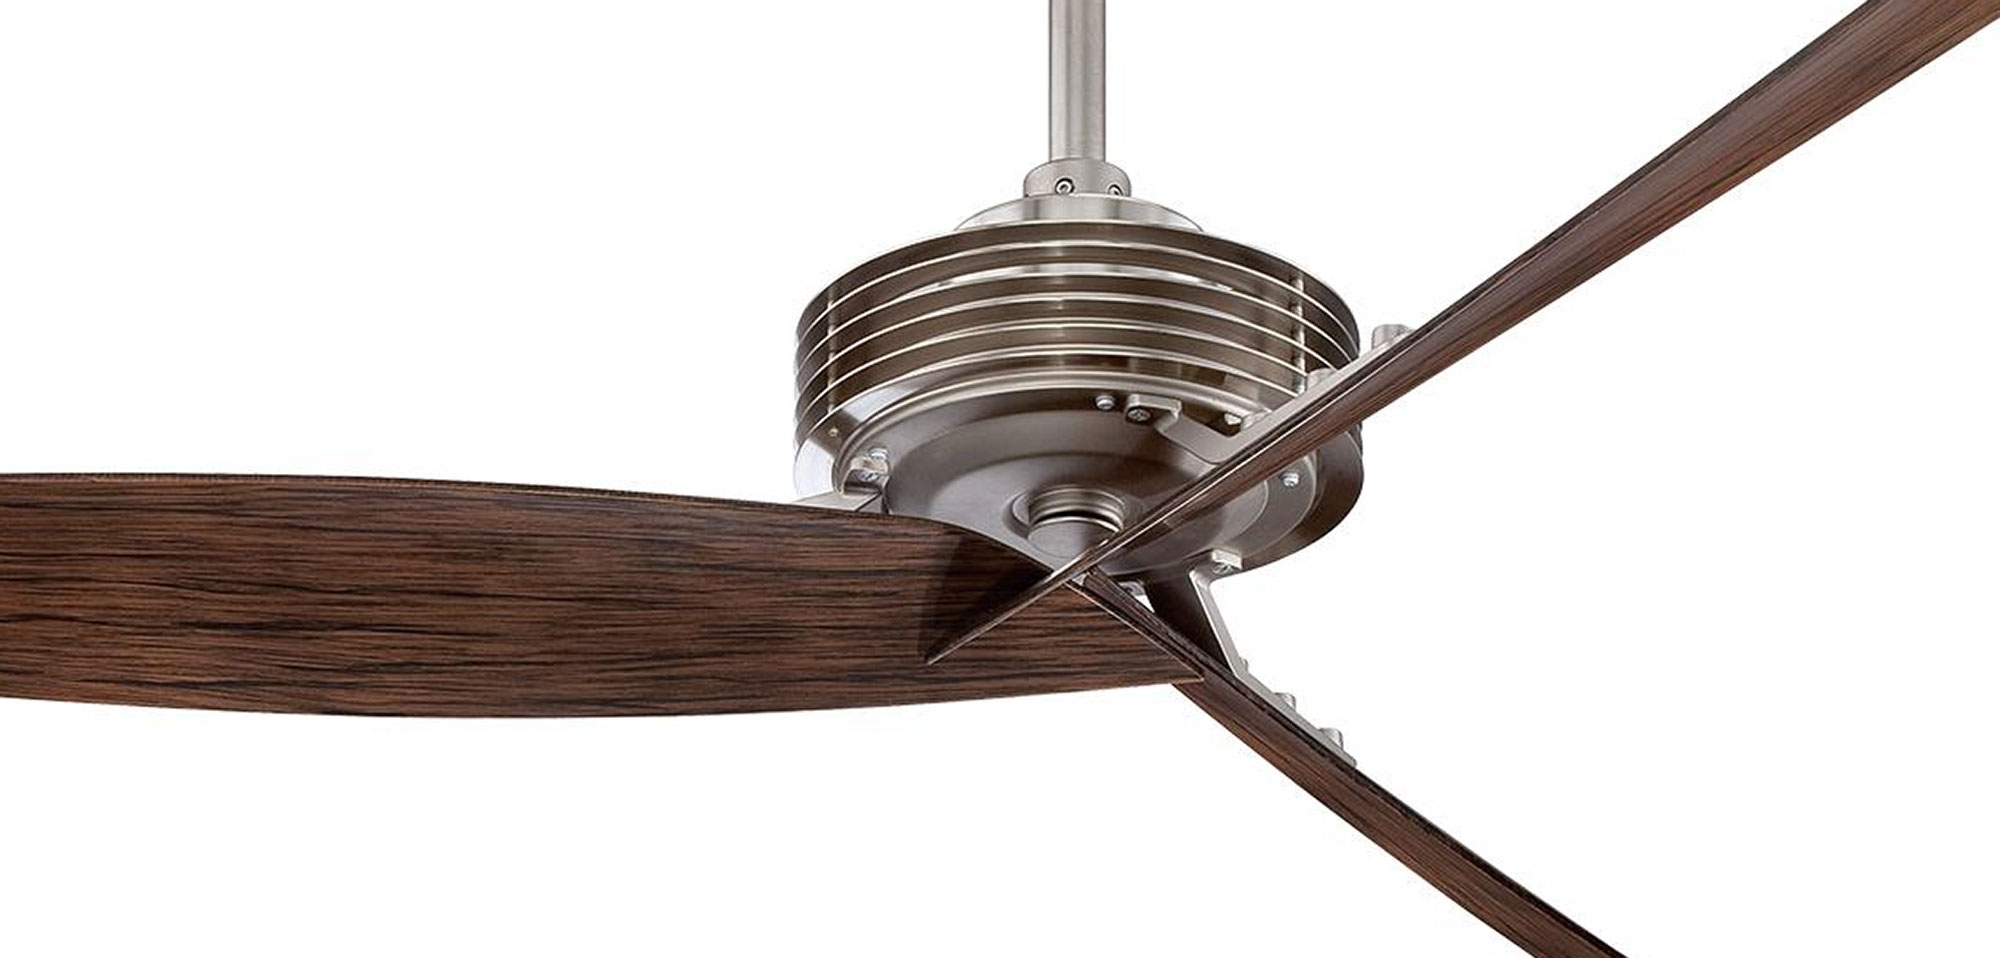 Widely Used Ceiling: Awesome Rustic Outdoor Ceiling Fans Rustic Ceiling Fans In Unique Outdoor Ceiling Fans (View 20 of 20)